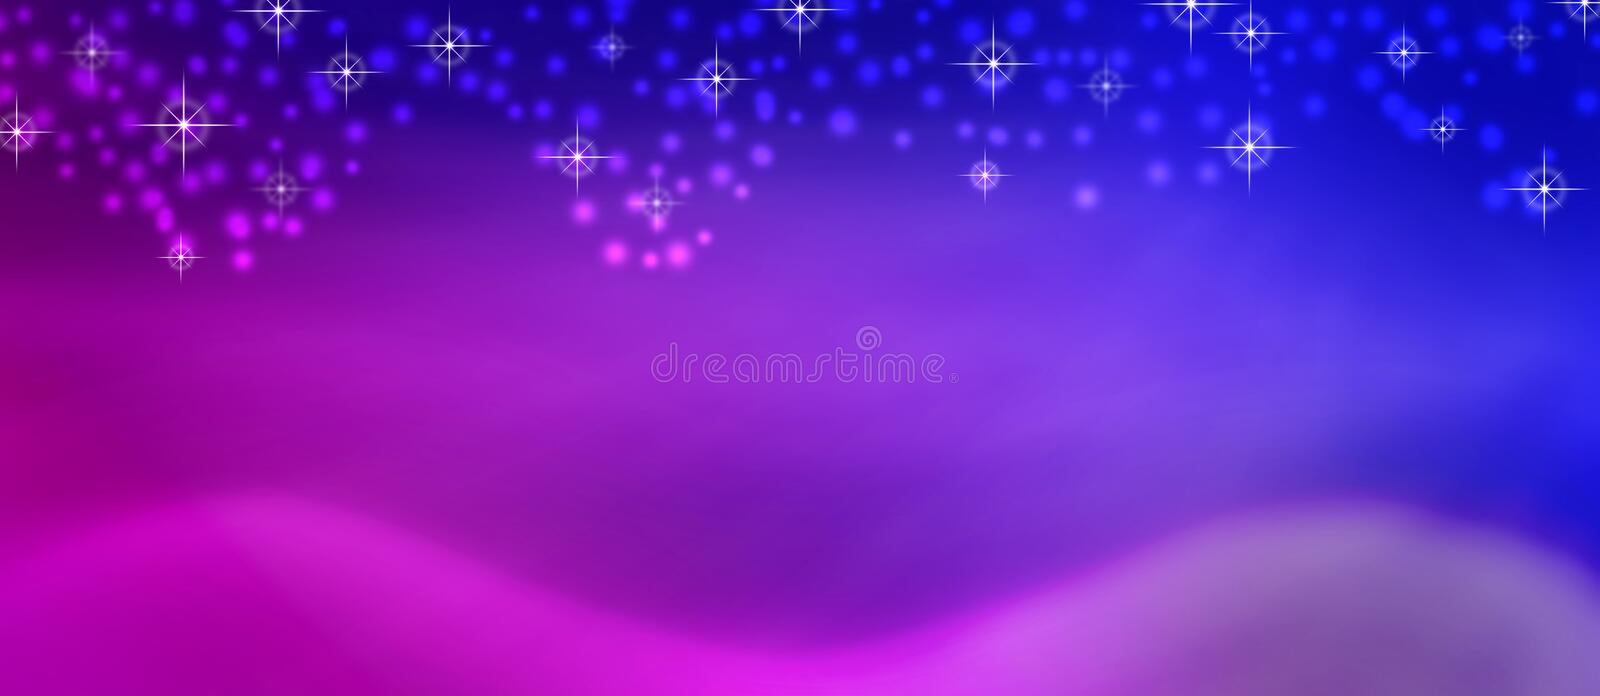 Abstract Shiny Sparkles and Snow Falling in Blurred Pink, Purple and Blue Background stock photos